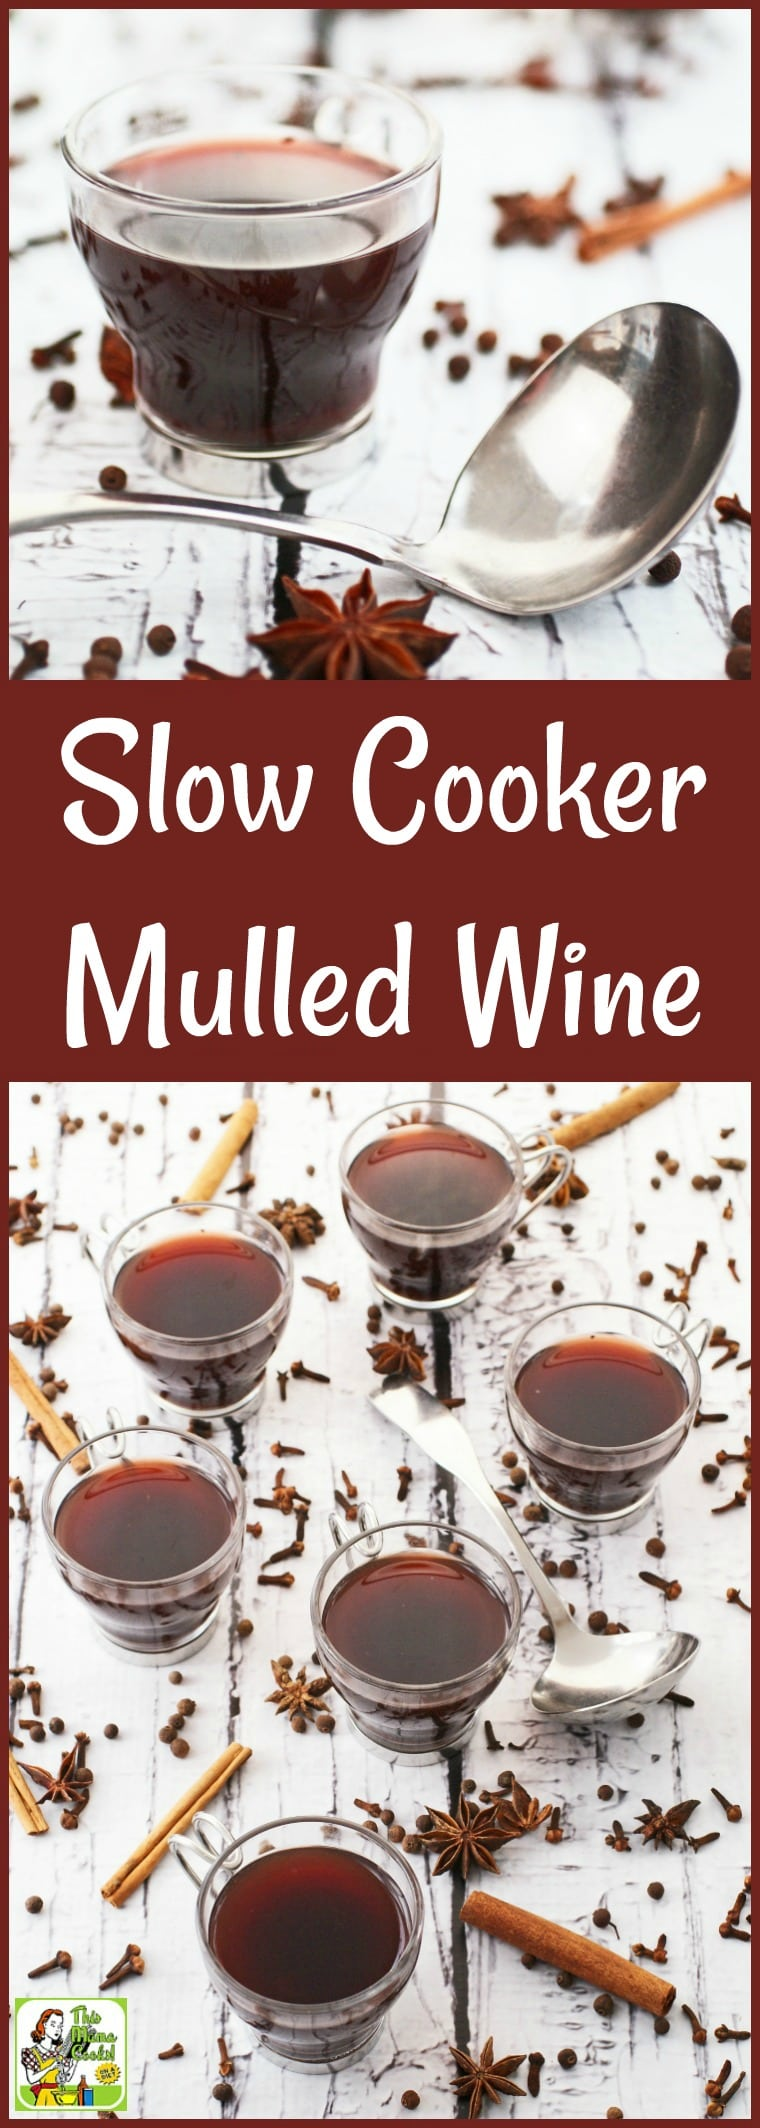 Make Slow Cooker Mulled Wine for your holiday parties. This easy to make holiday party cocktail can be made and served in your Crock-Pot. Your guests will love warming up with this delicious holiday drink recipe. #slowcooker #crockpot #wine #cocktails #entertaining #cocktail #drinks #drink